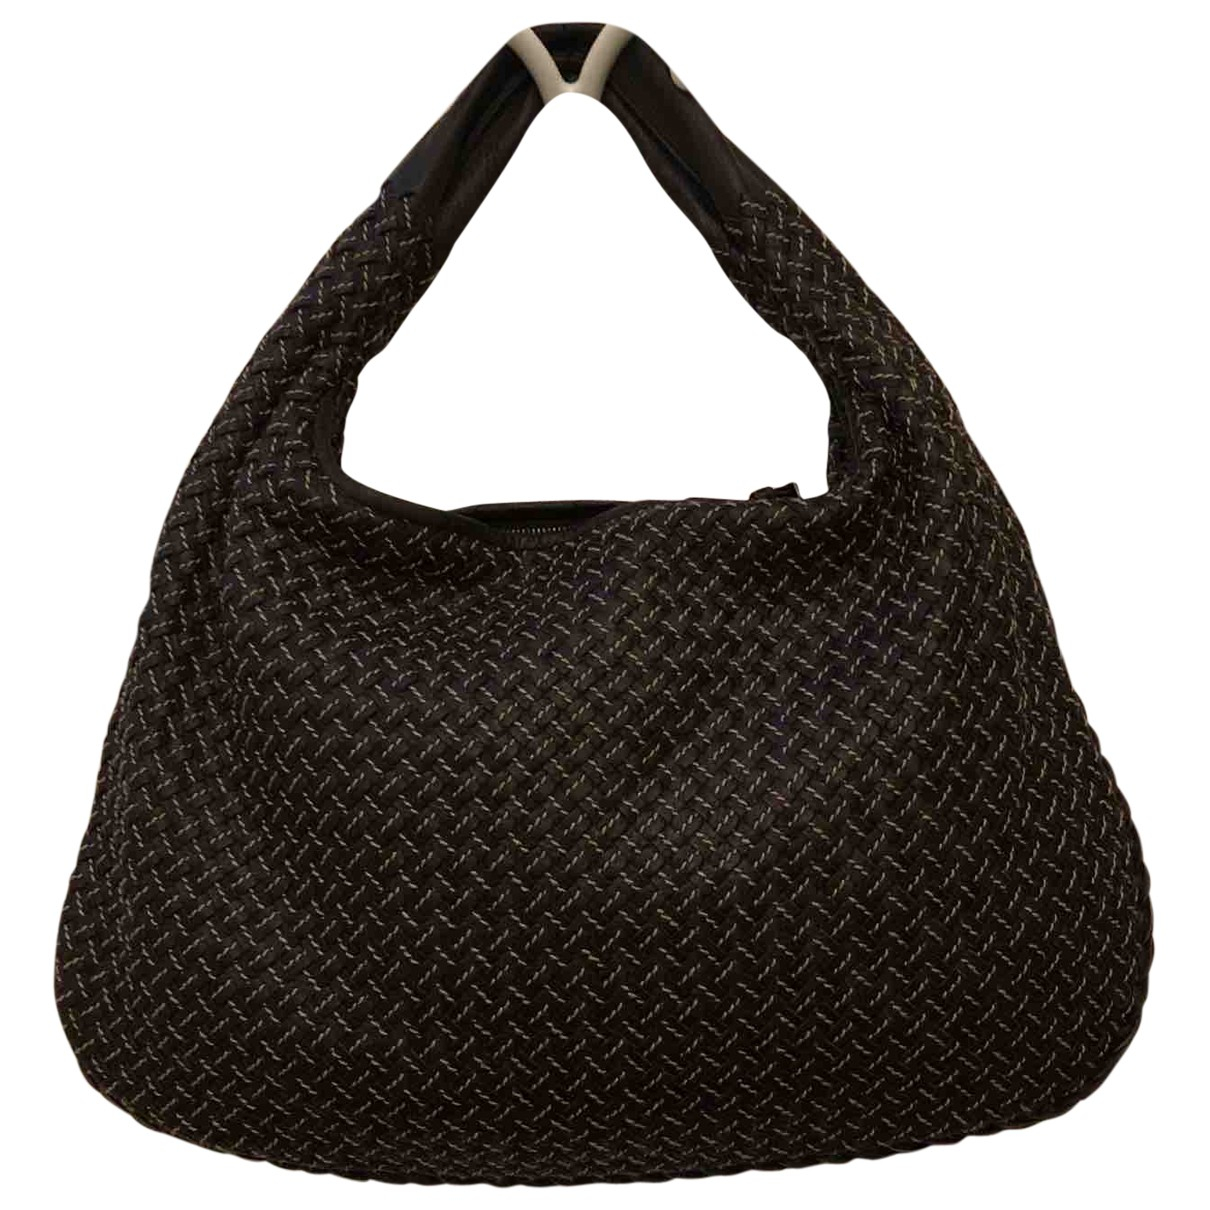 Bottega Veneta Veneta Brown Leather handbag for Women \N